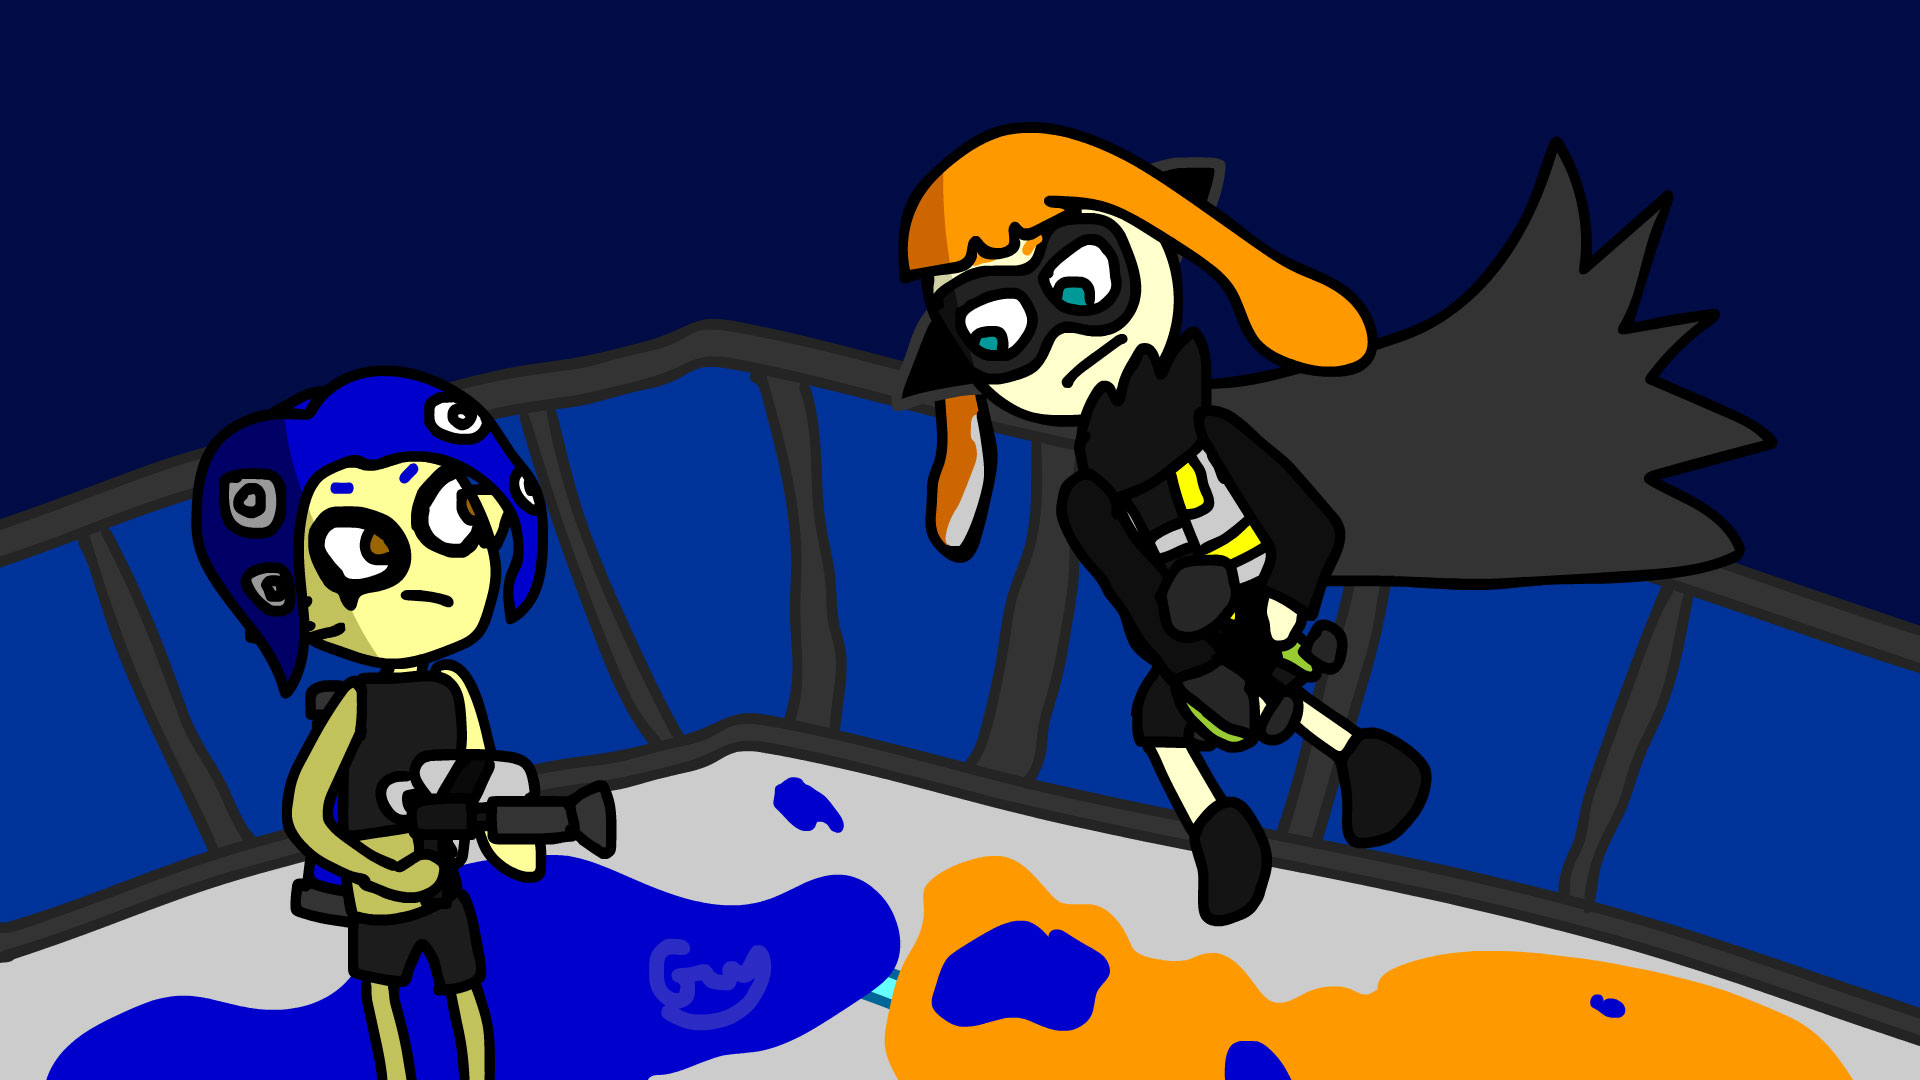 Splatoon 2 Octo Expansion Spoilers By Redreapee On Newgrounds